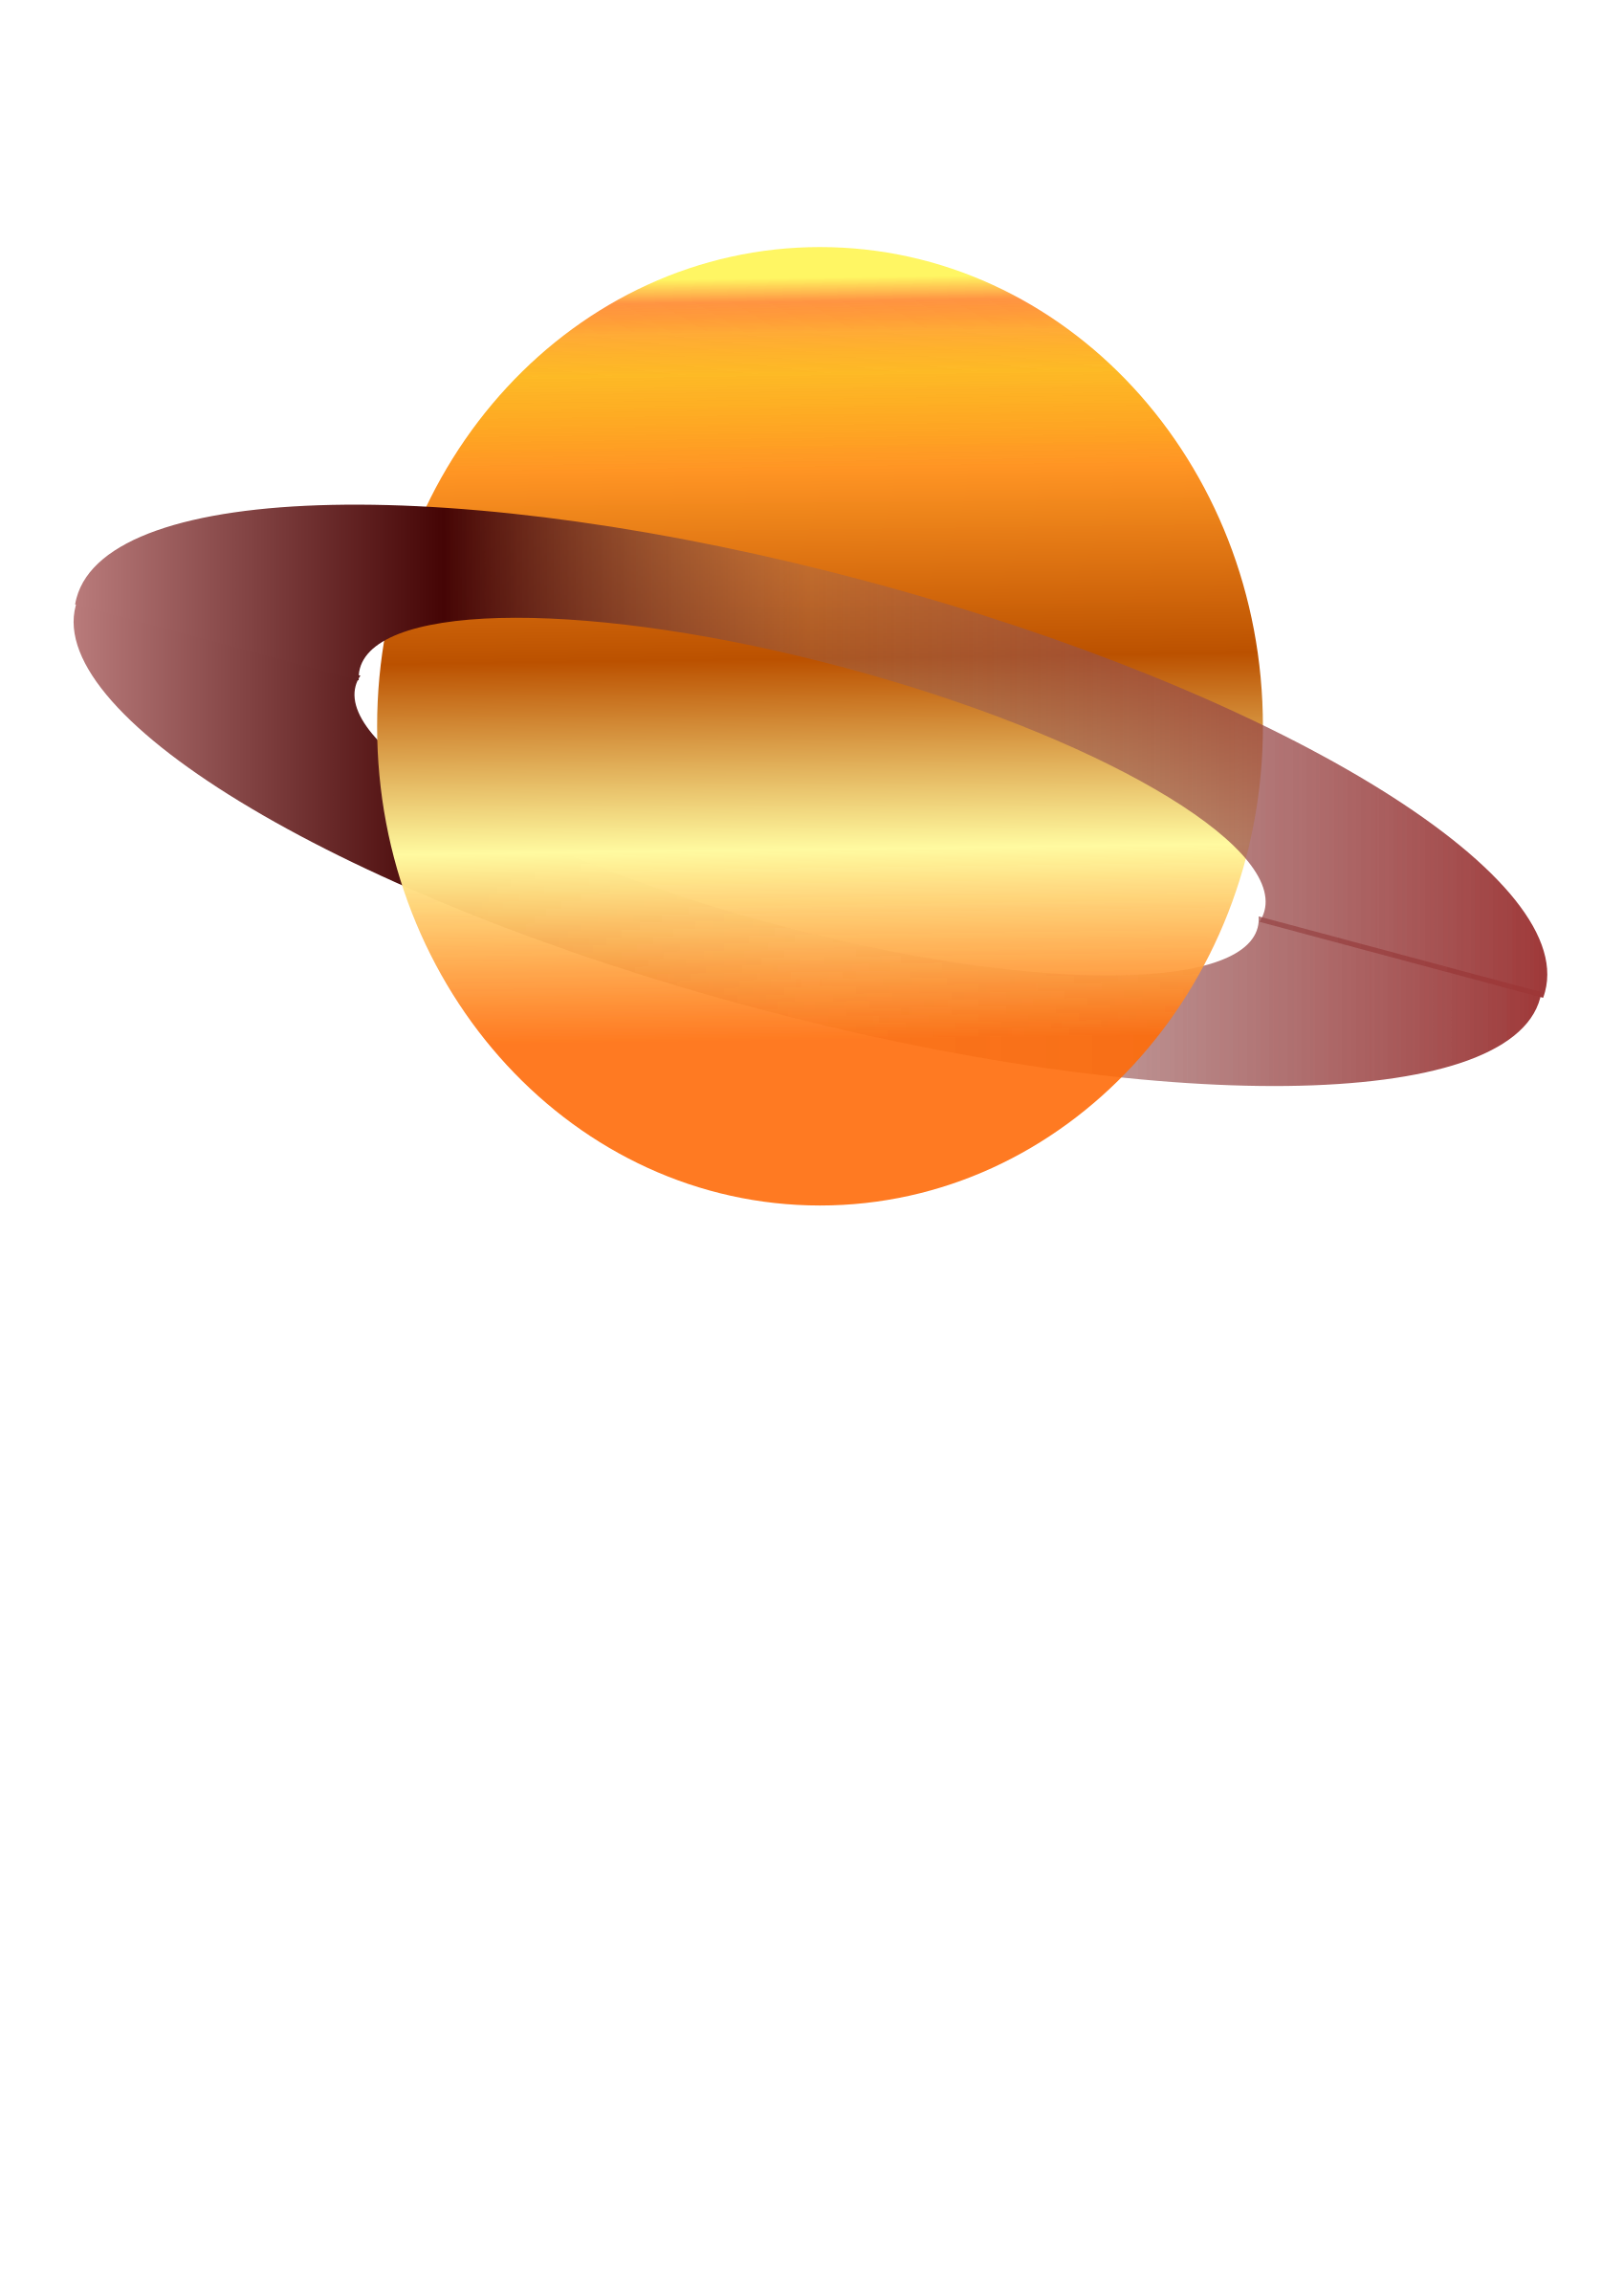 Planet clipart saturn. Planeta saturno icons png